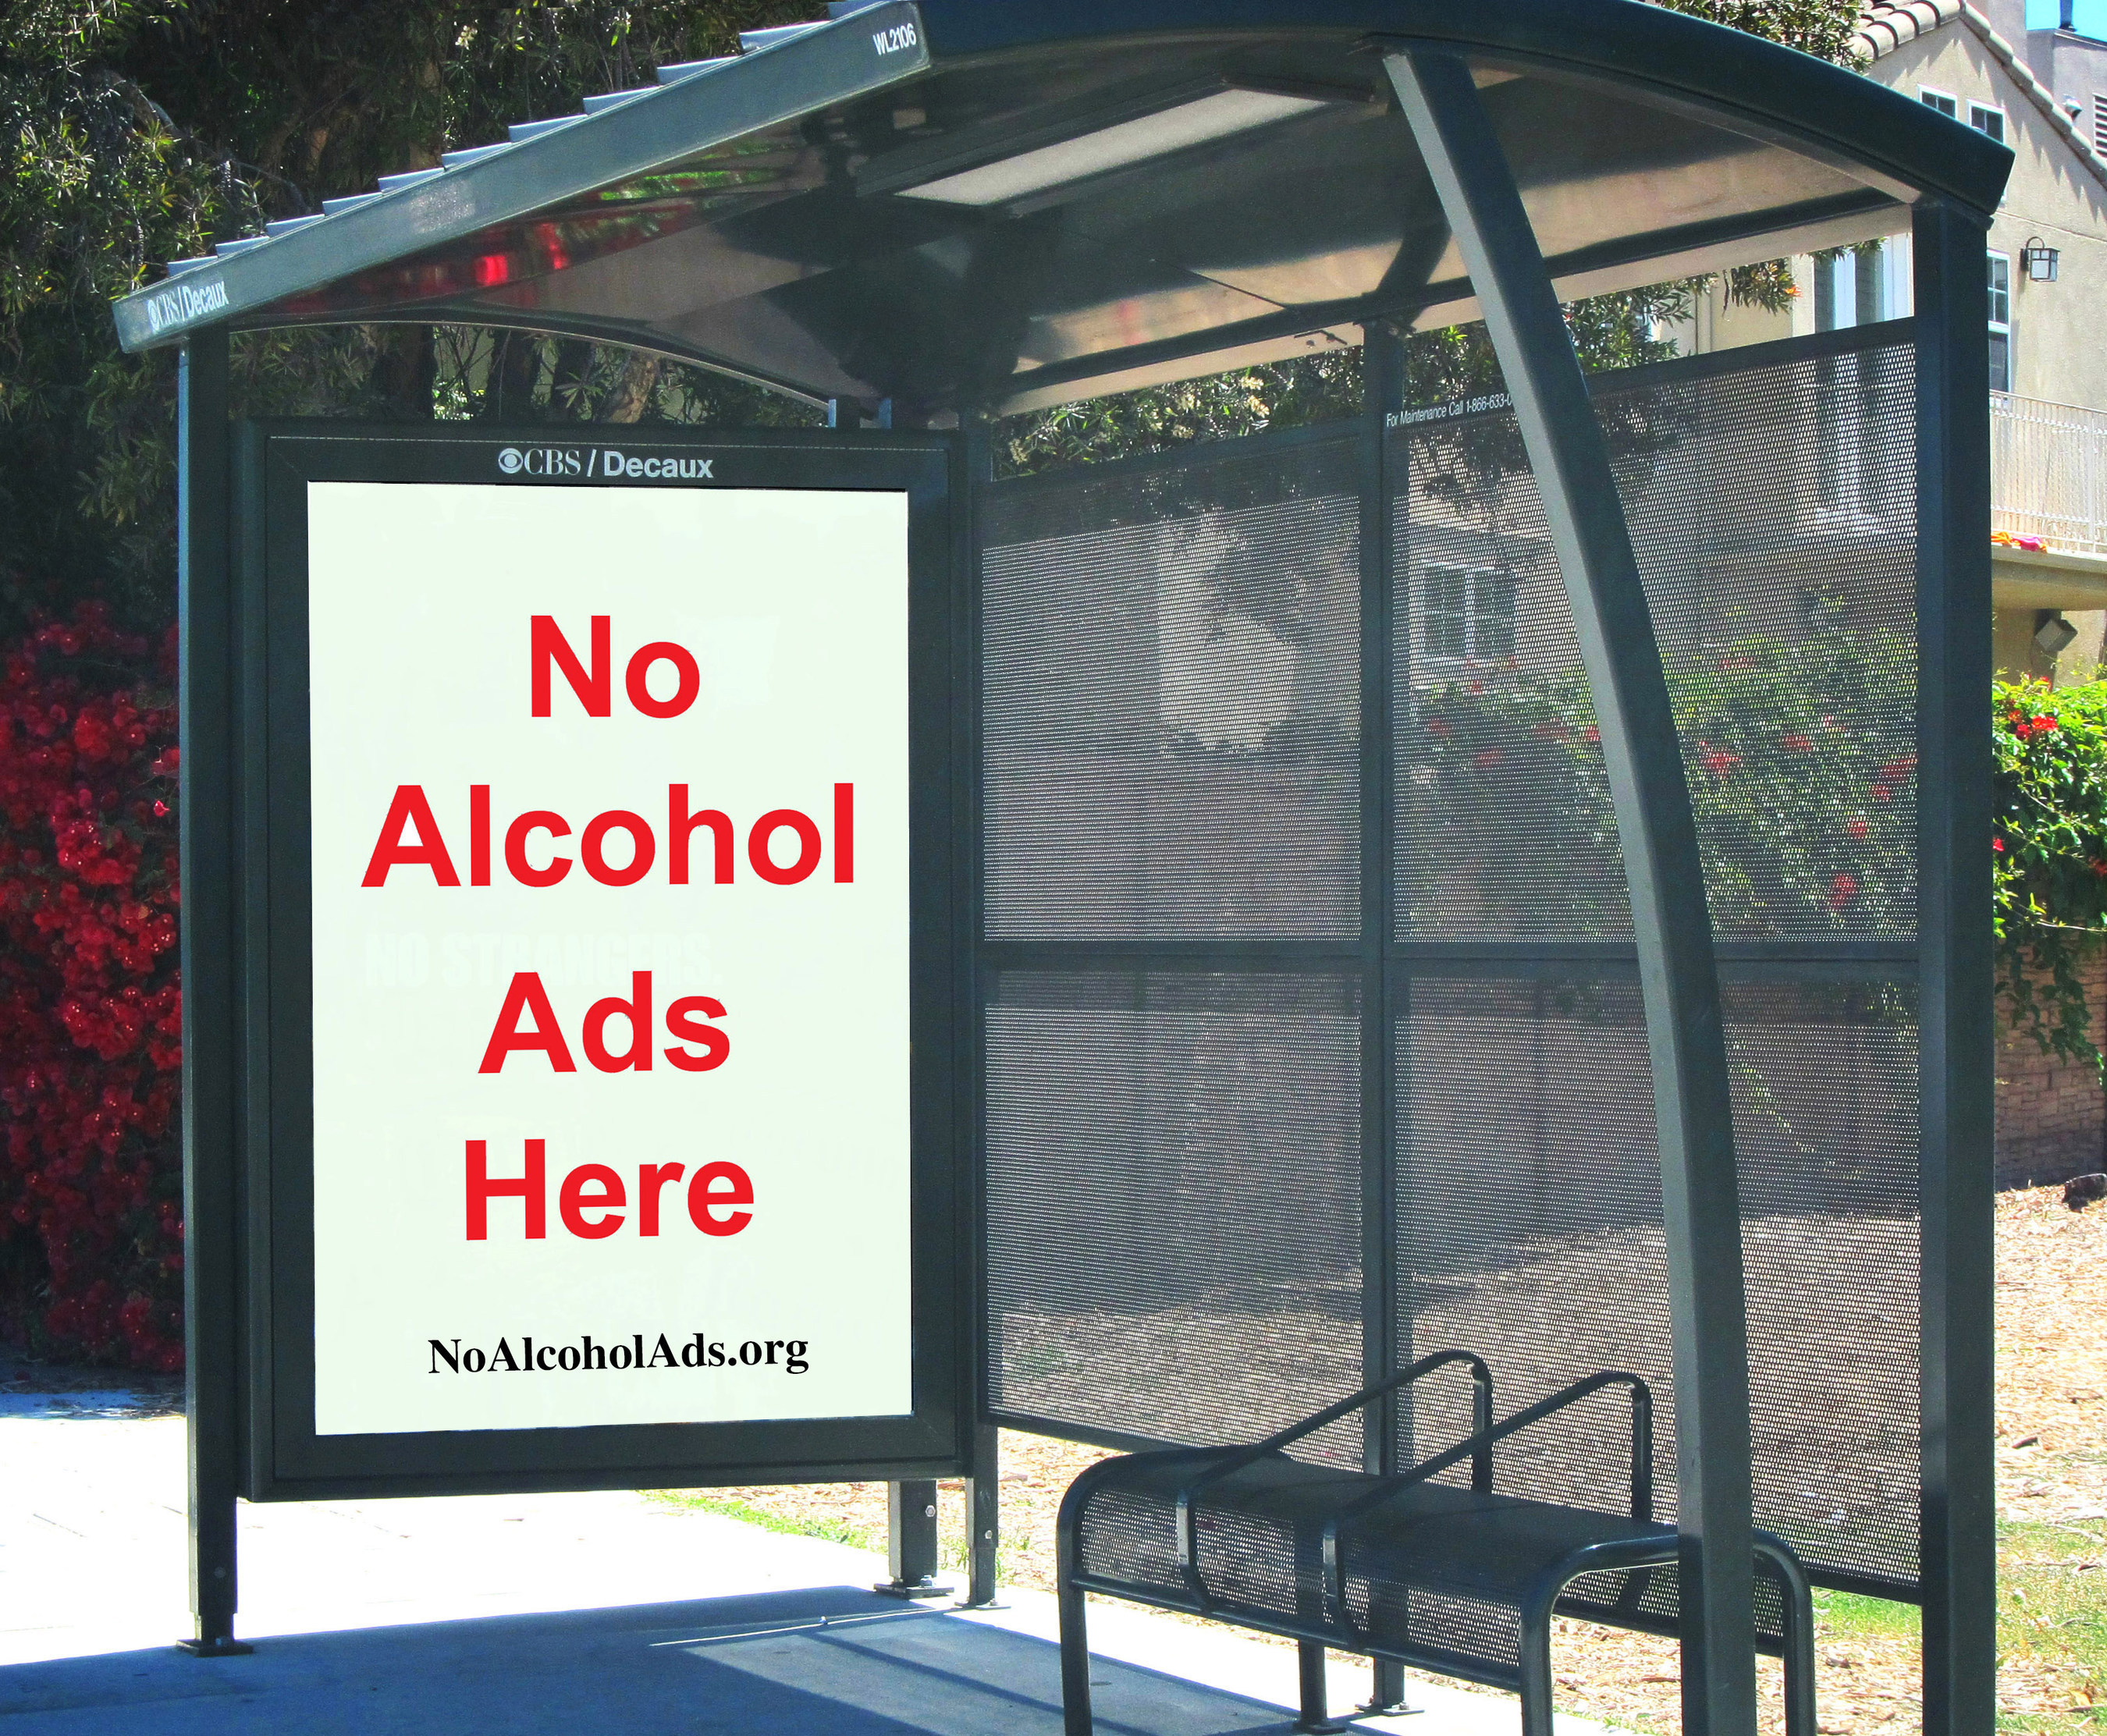 advertising alcohol essays English essays: advertising and alcohol advertising and alcohol this essay advertising and alcohol and other 63,000+ term papers, college essay examples and free essays are available now on reviewessayscom.